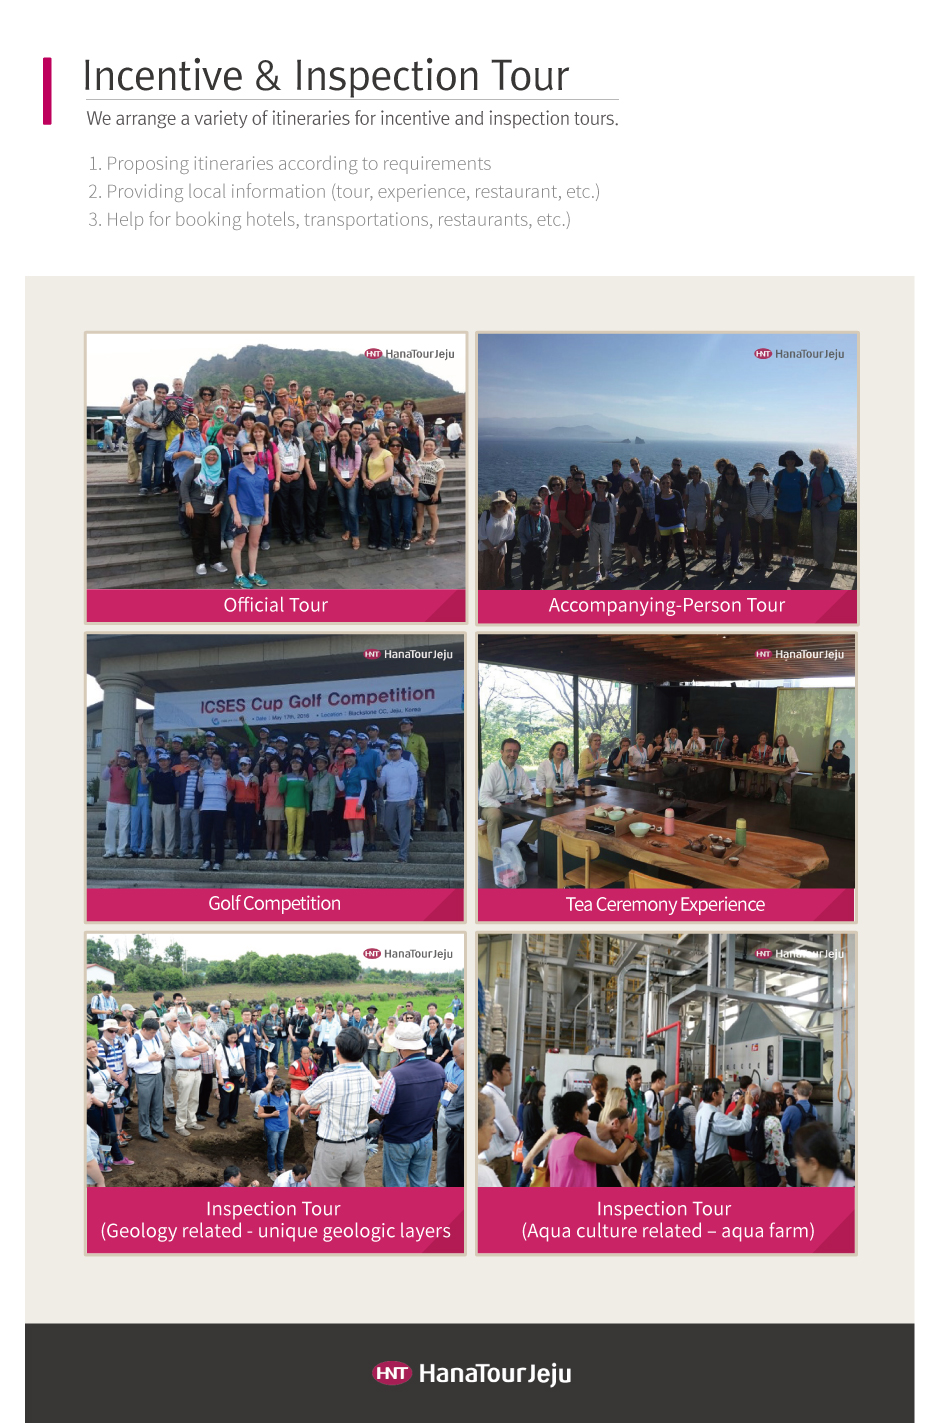 #Jeju business tour #Jeju incentive tour #Jeju golf tour #Jeju inspection